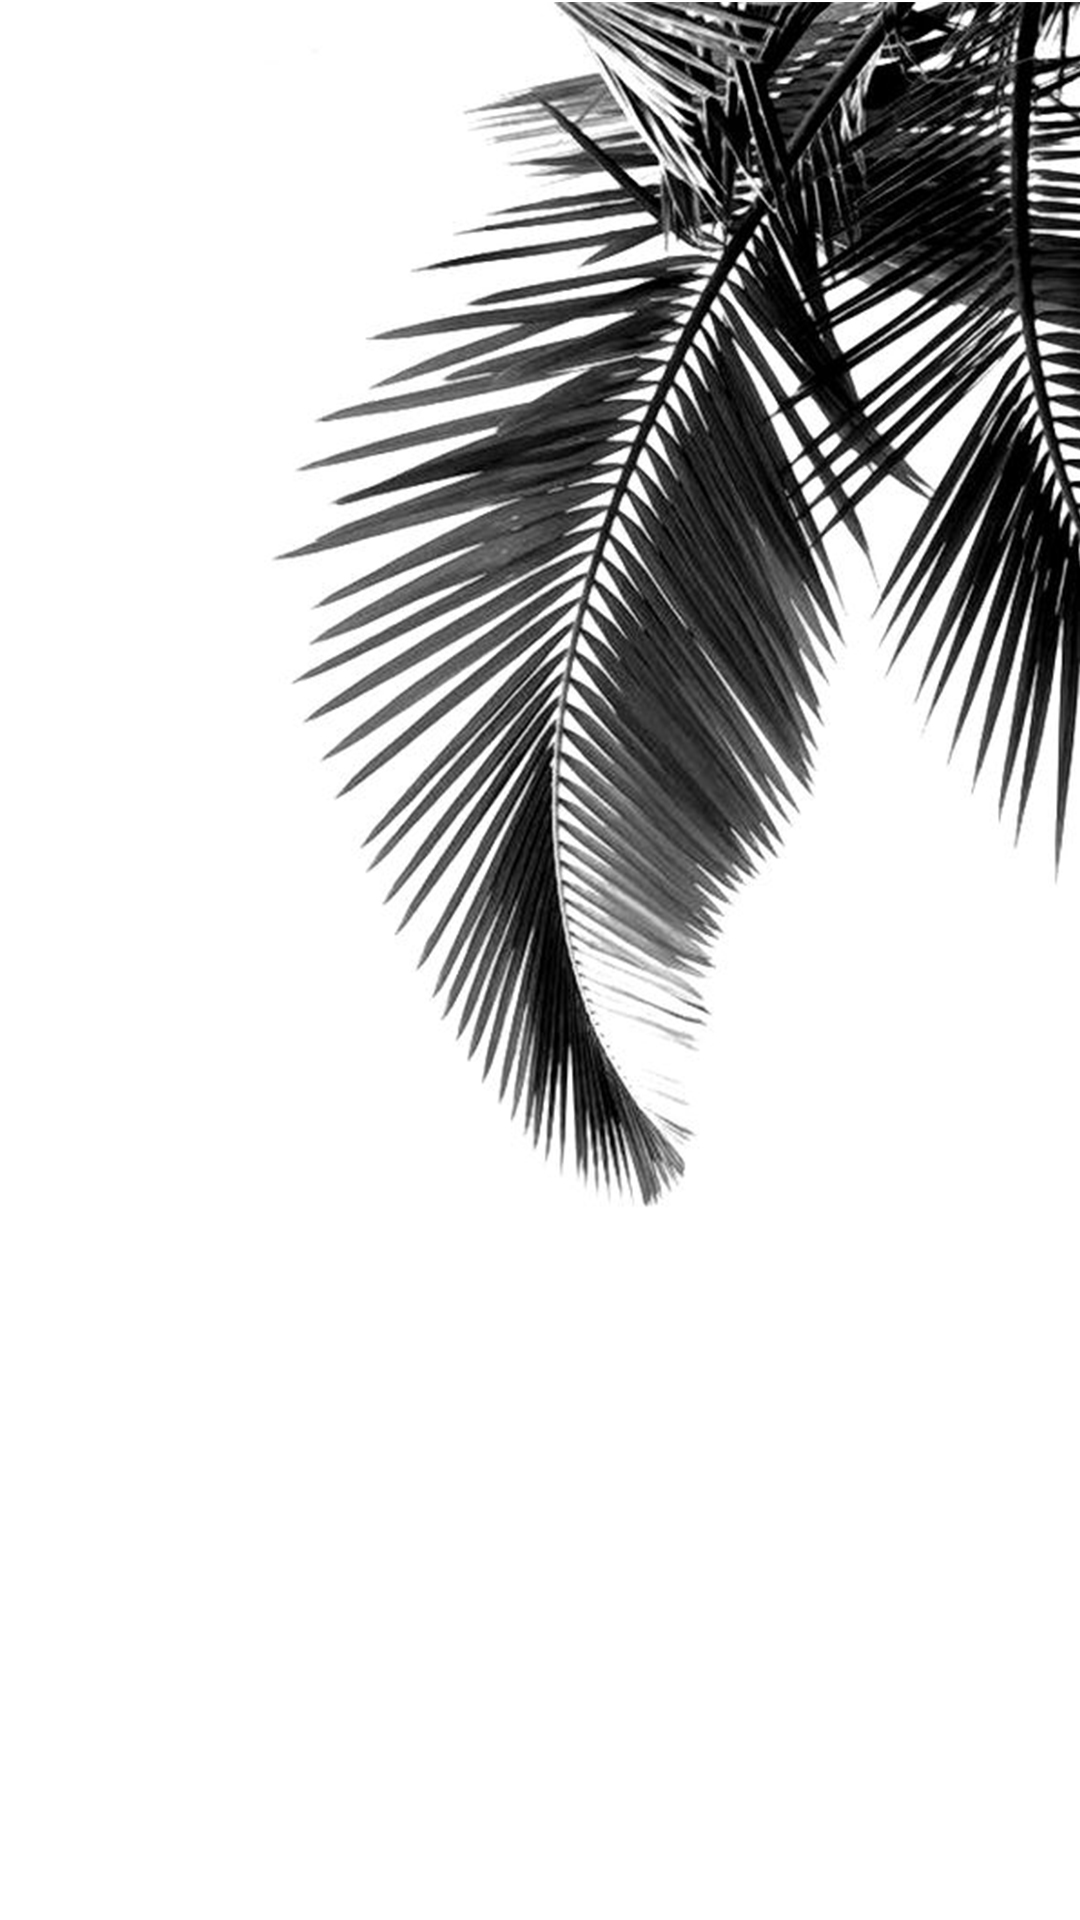 banana tree leaves simple black and white gray background